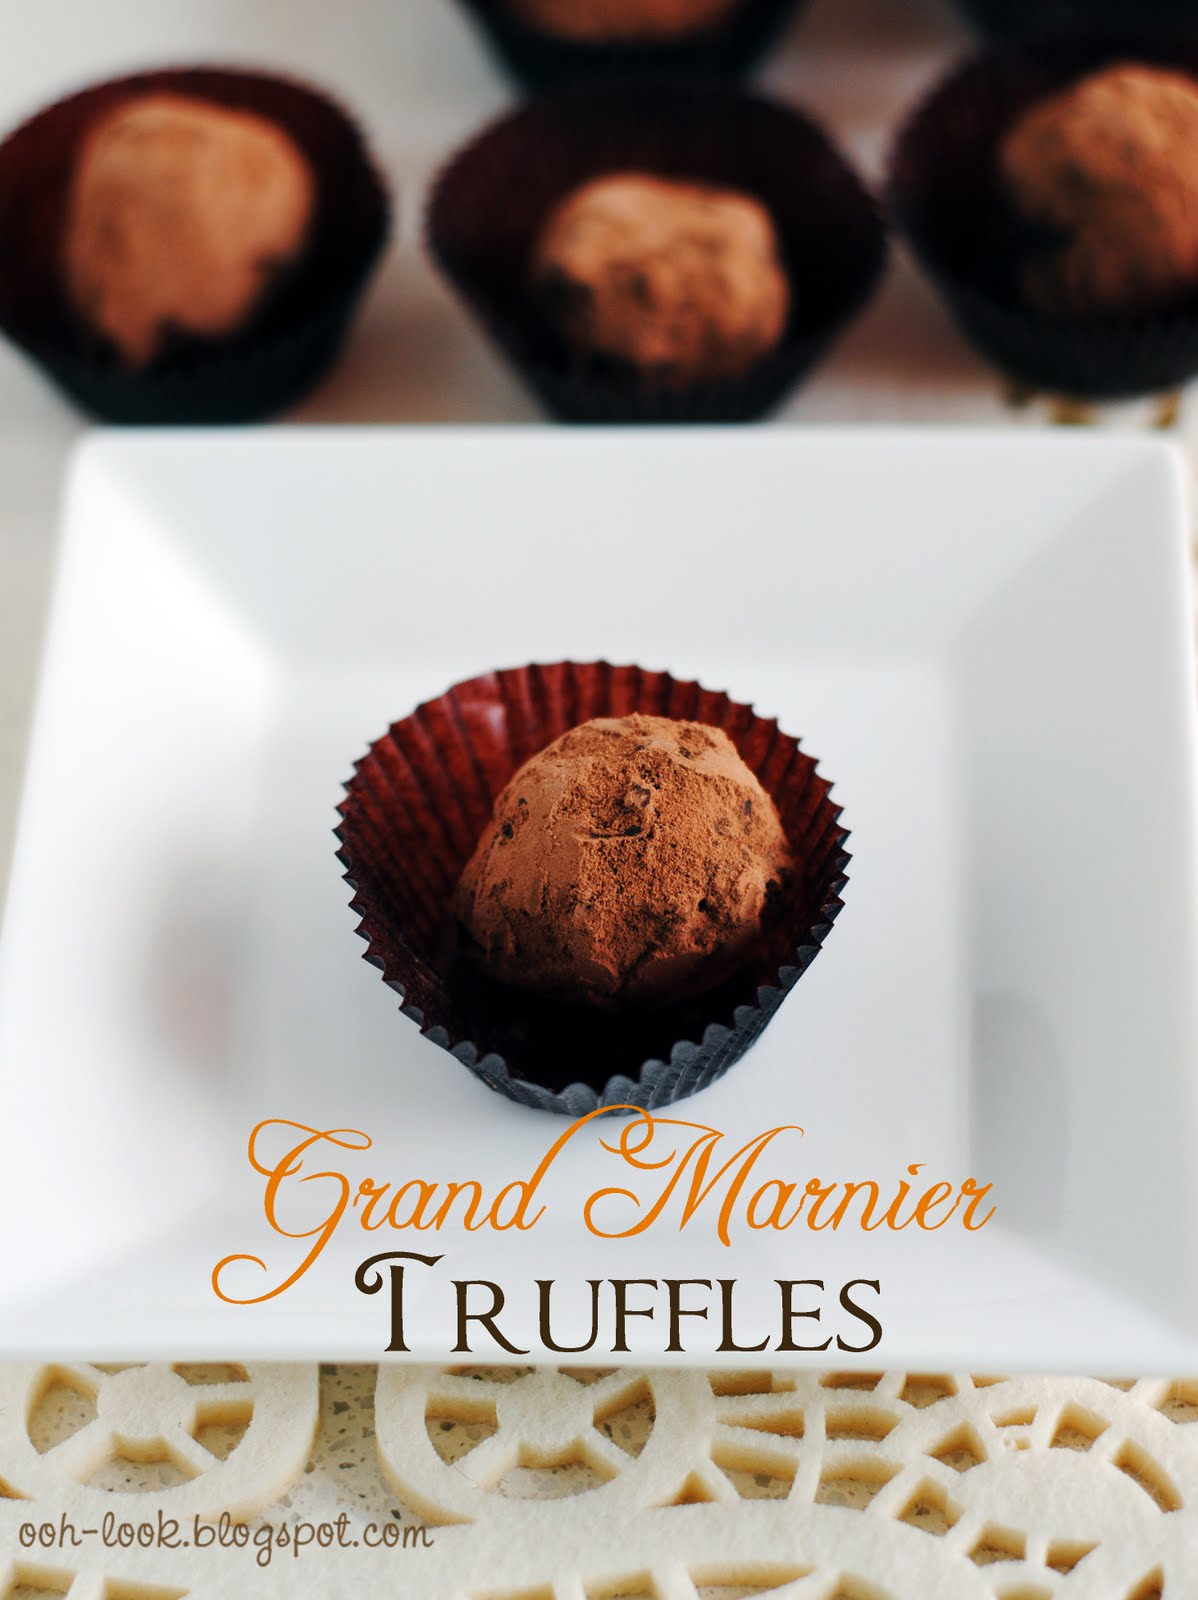 Ooh, Look...: Grand Marnier Truffles